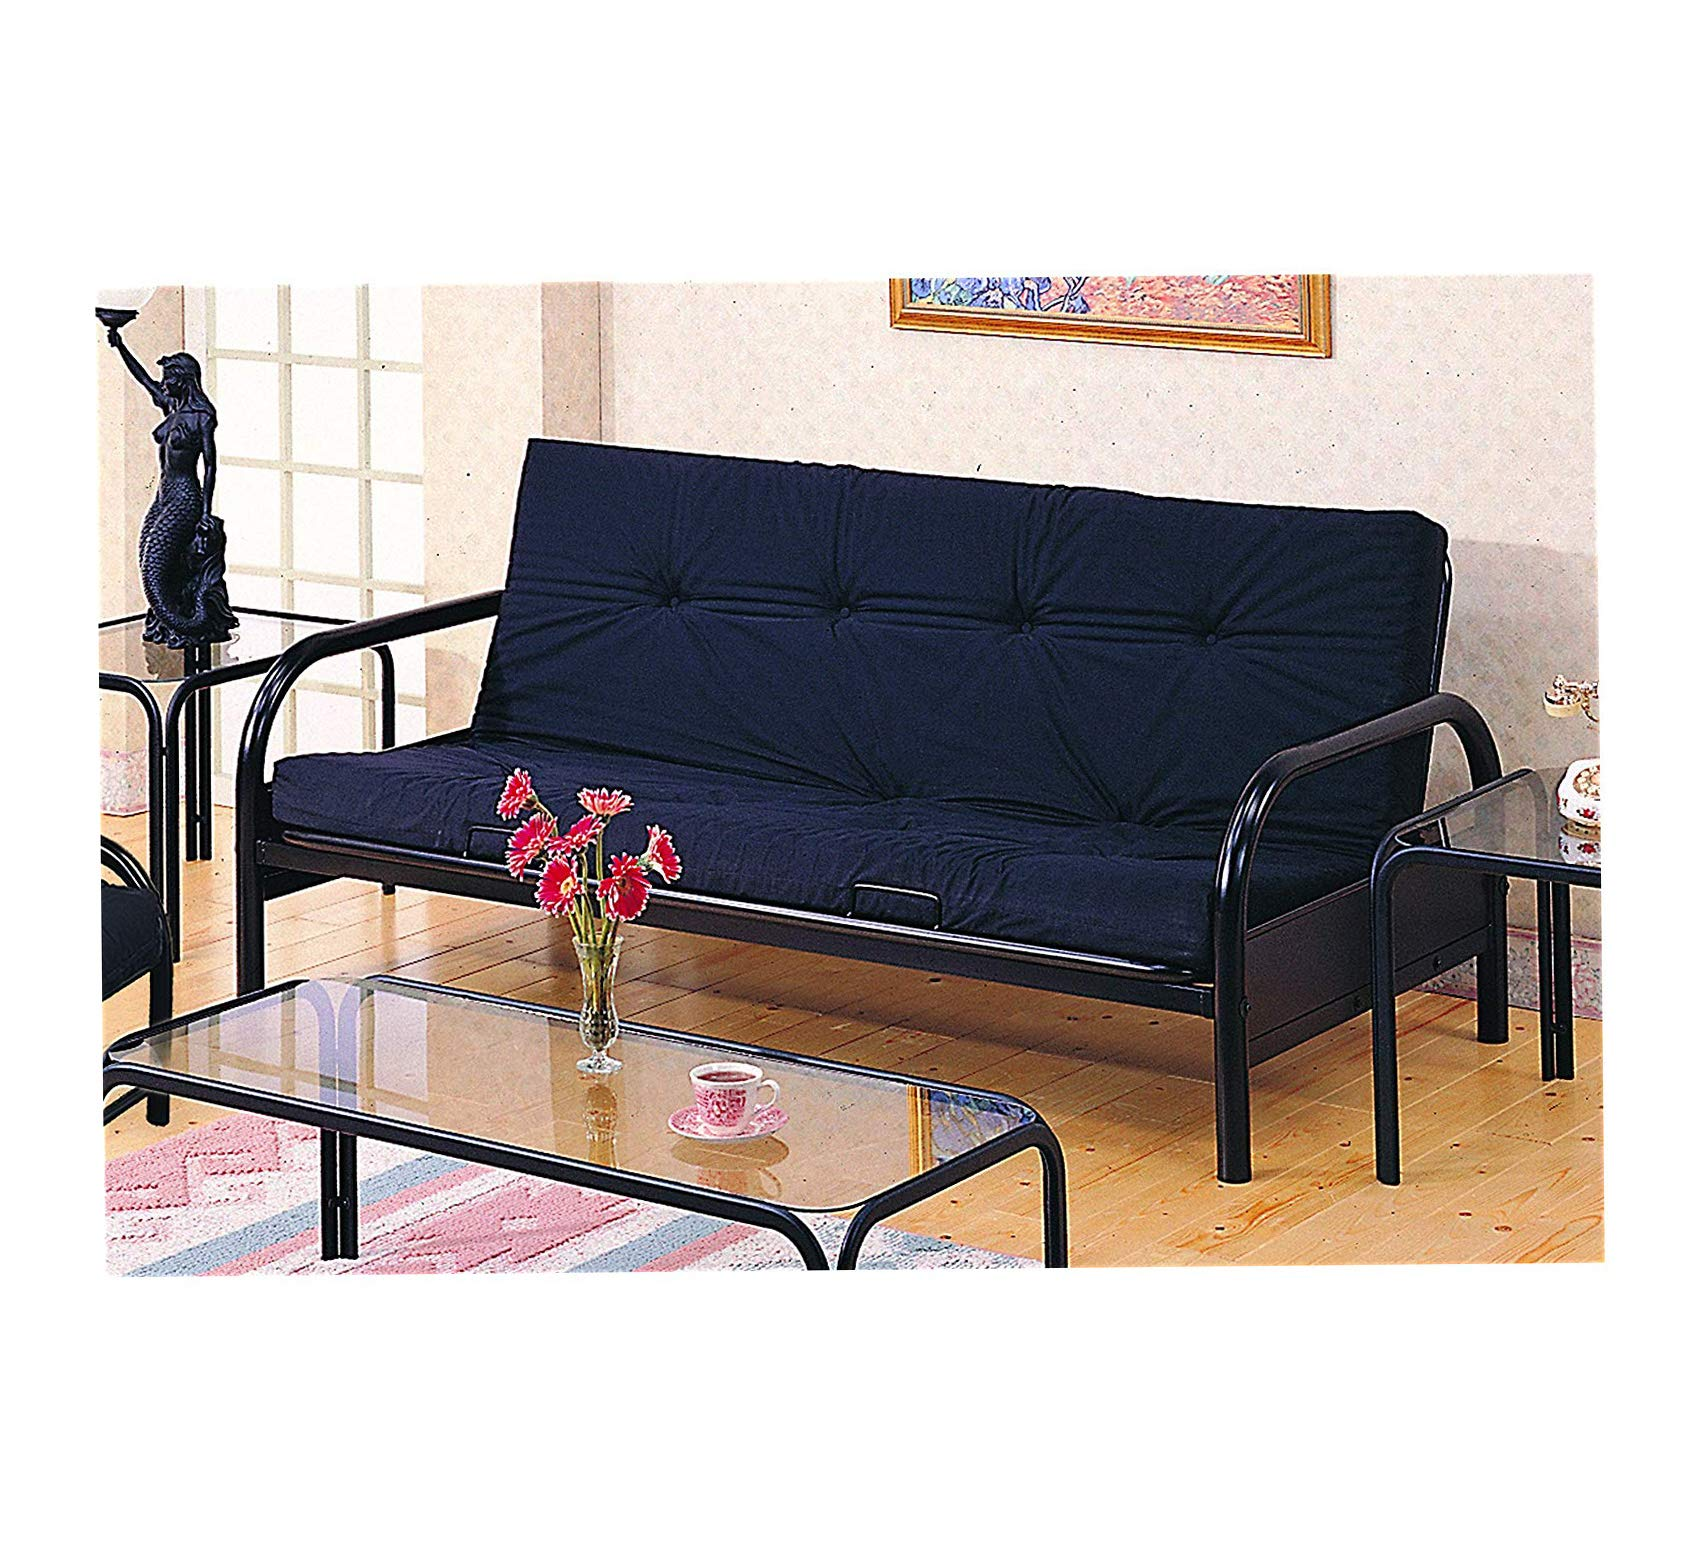 Wood & Style Home Metal Futon Frame Glossy Black Office Décor Studio Living Heavy Duty Commercial Bar Café Restaurant by Wood & Style